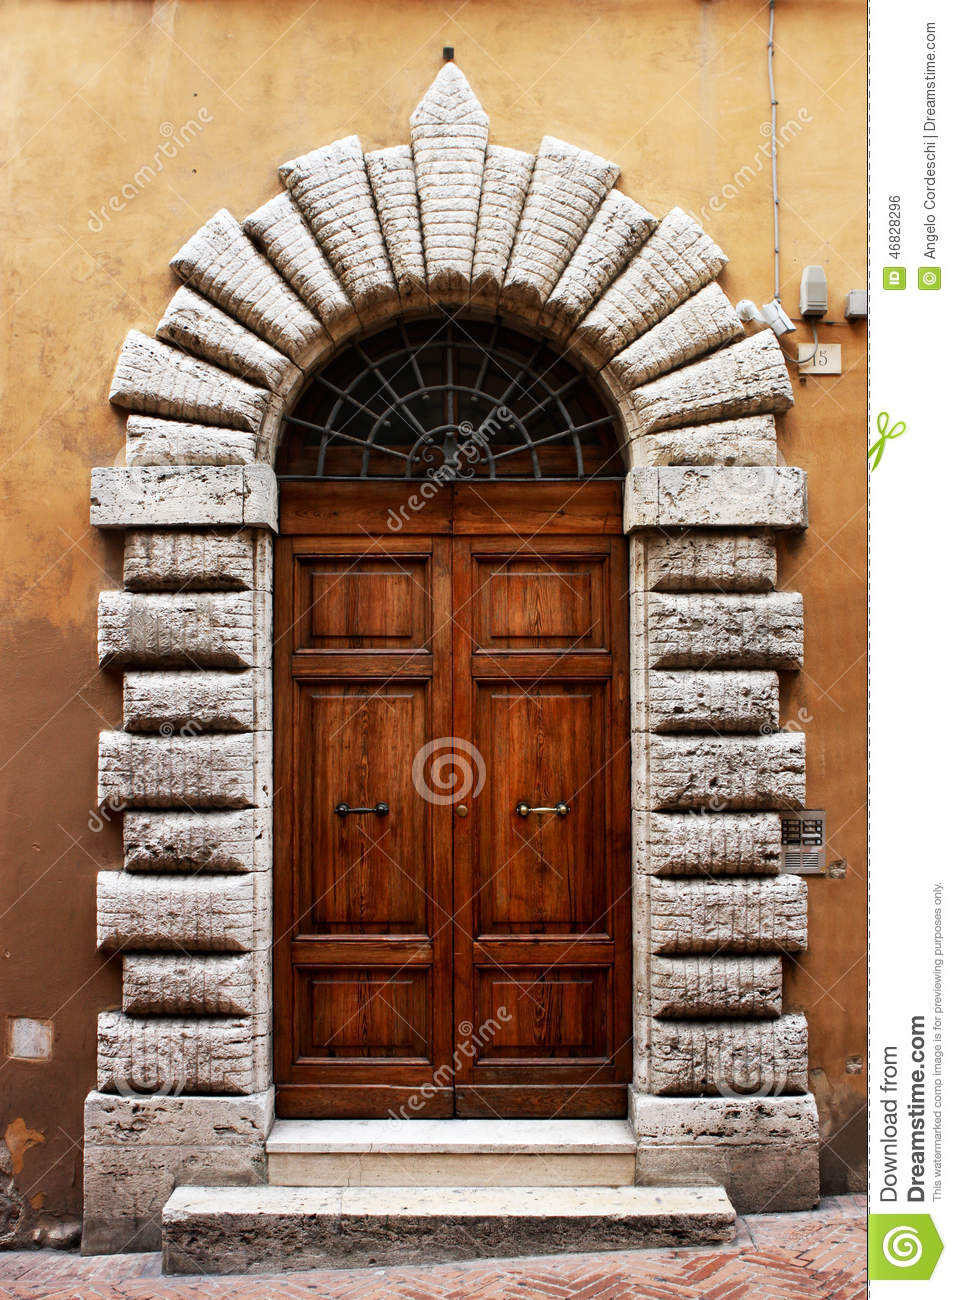 Ancient Wooden Door Of A Historic Building In Perugia Tuscany Italy Stock Photo